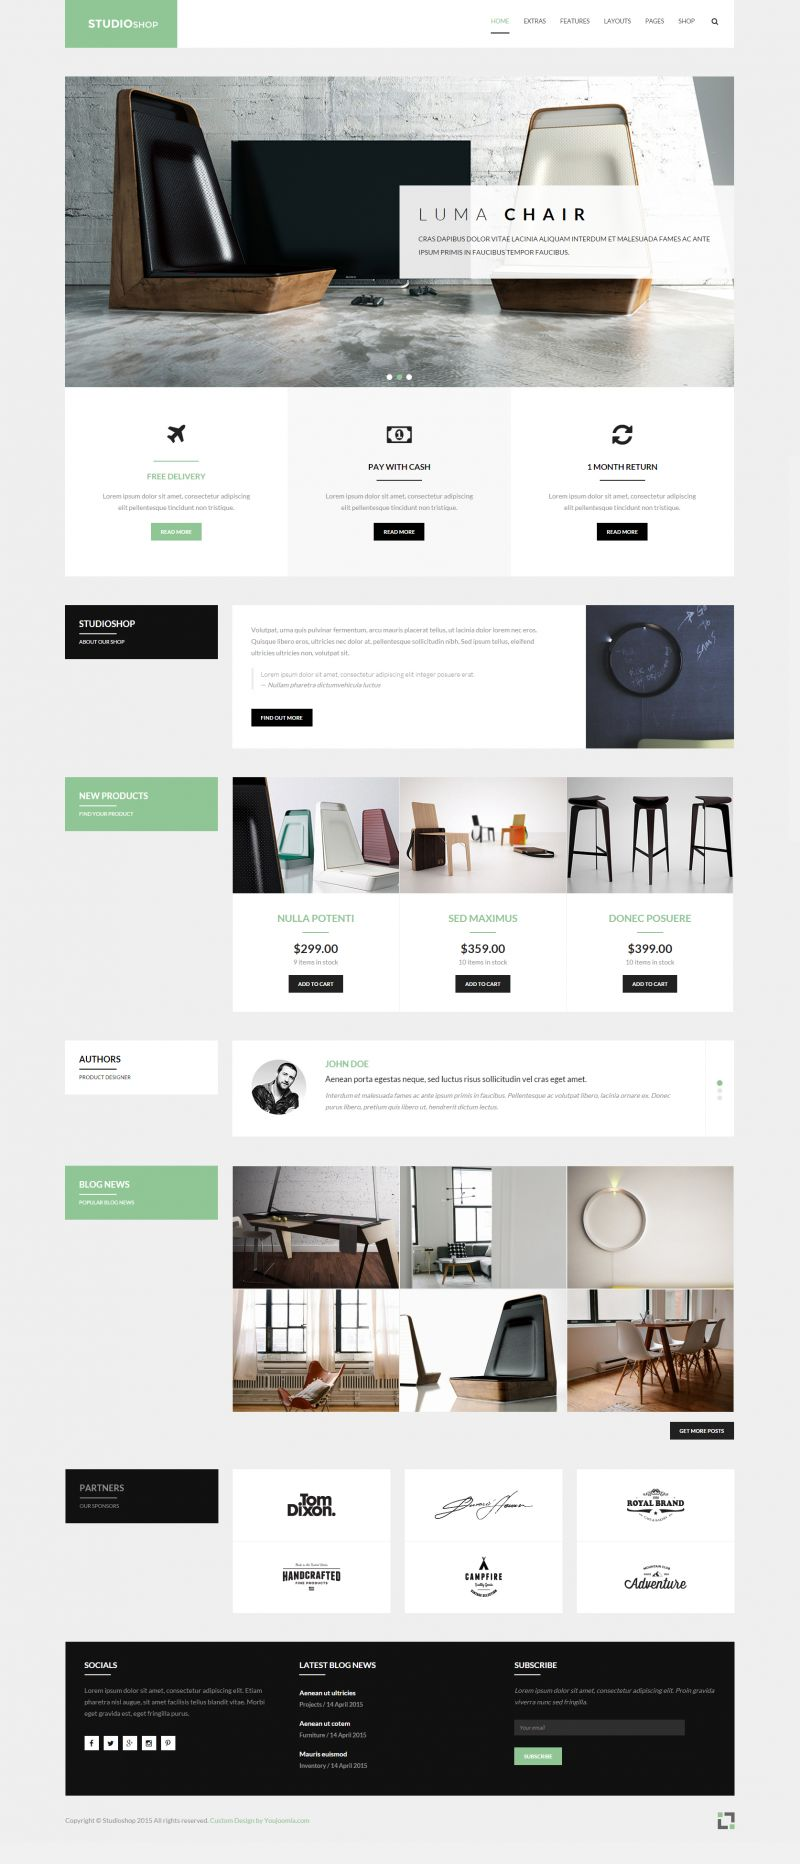 Studioshop - Furniture Gallery Shop Template Featuring HikaShop